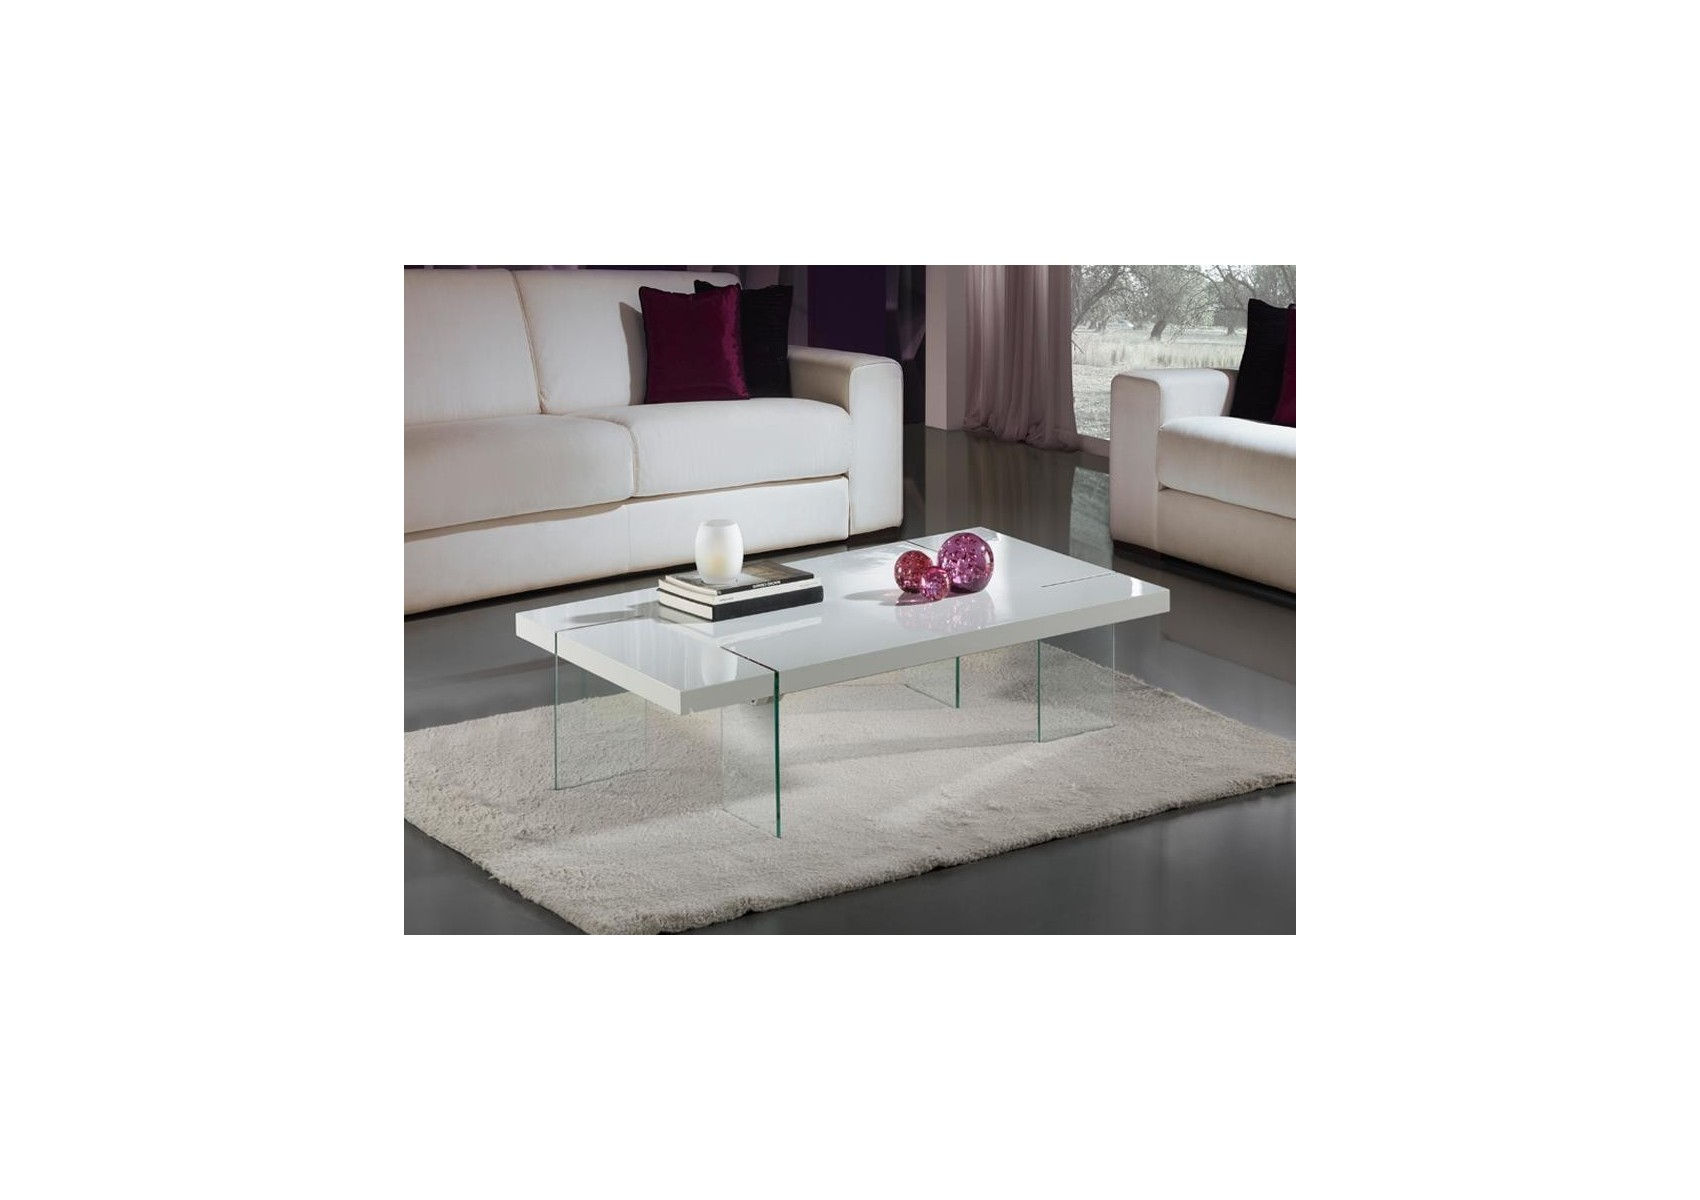 Table basse verre trempe blanc - Table basse verre design ...